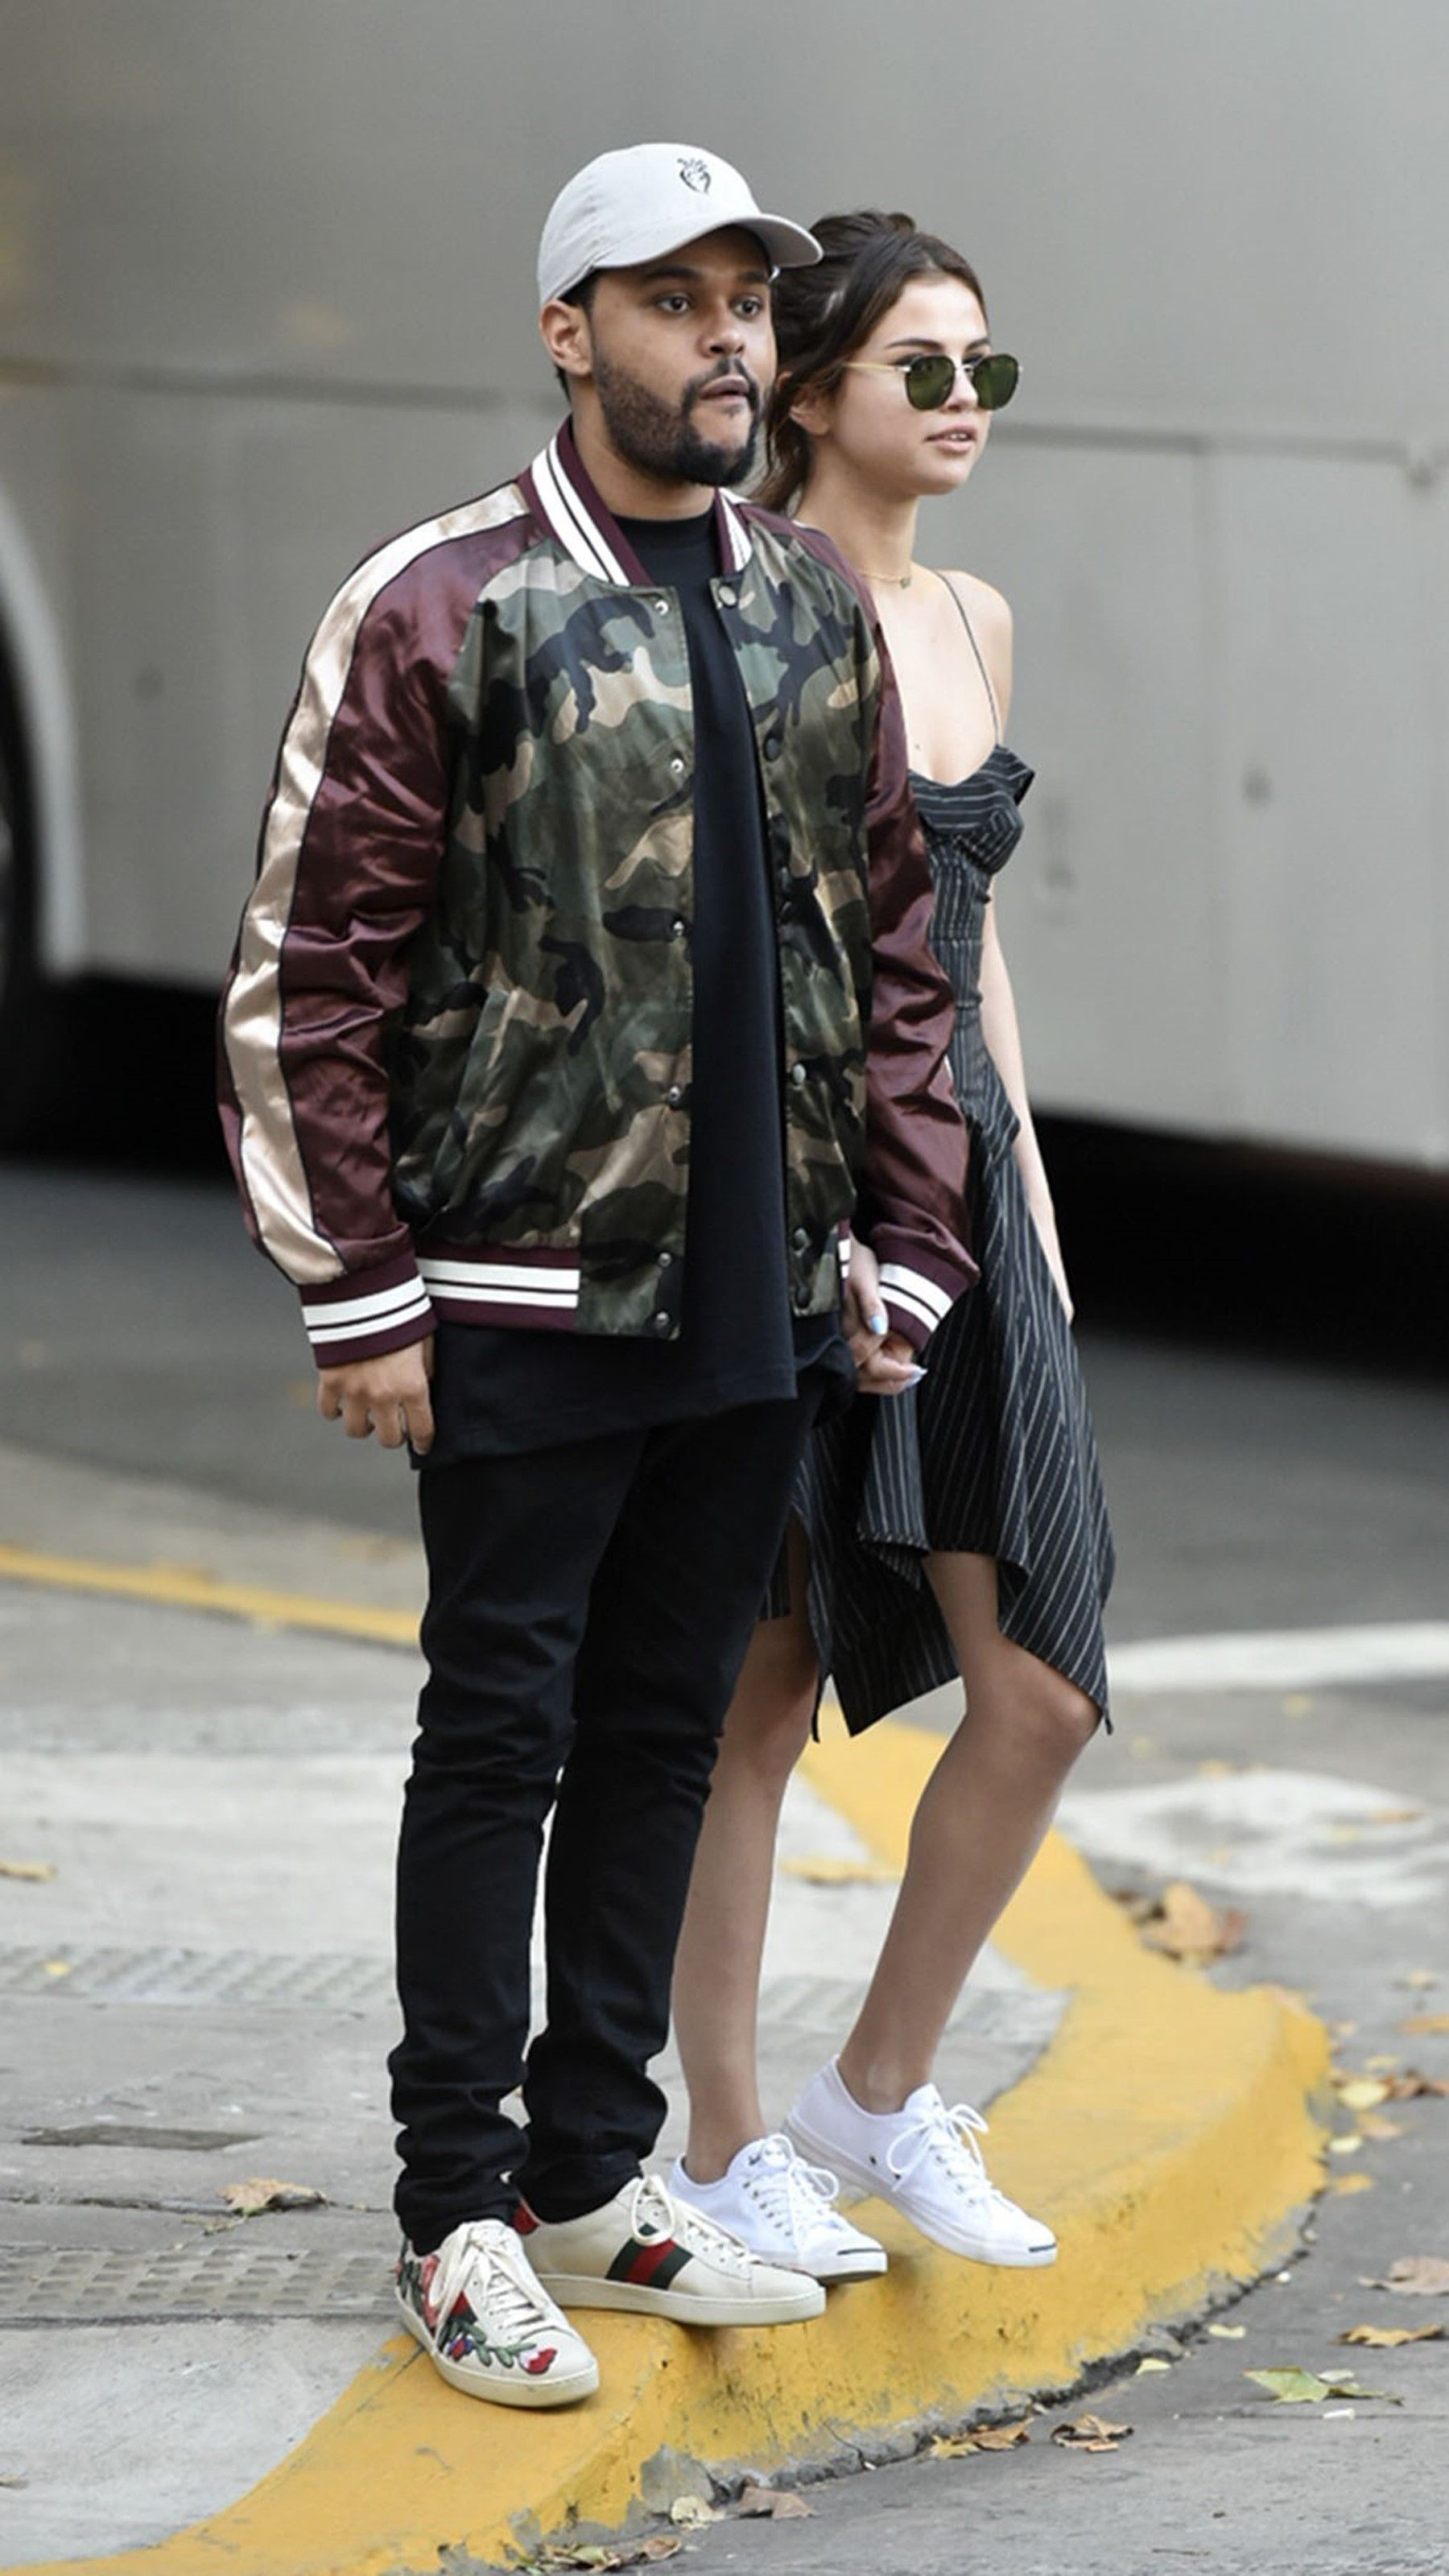 The Weeknd In Buenos Aires With Selena Gomez On Looklive Selena Gomez The Weeknd Fashion The Weeknd [ 3200 x 1800 Pixel ]